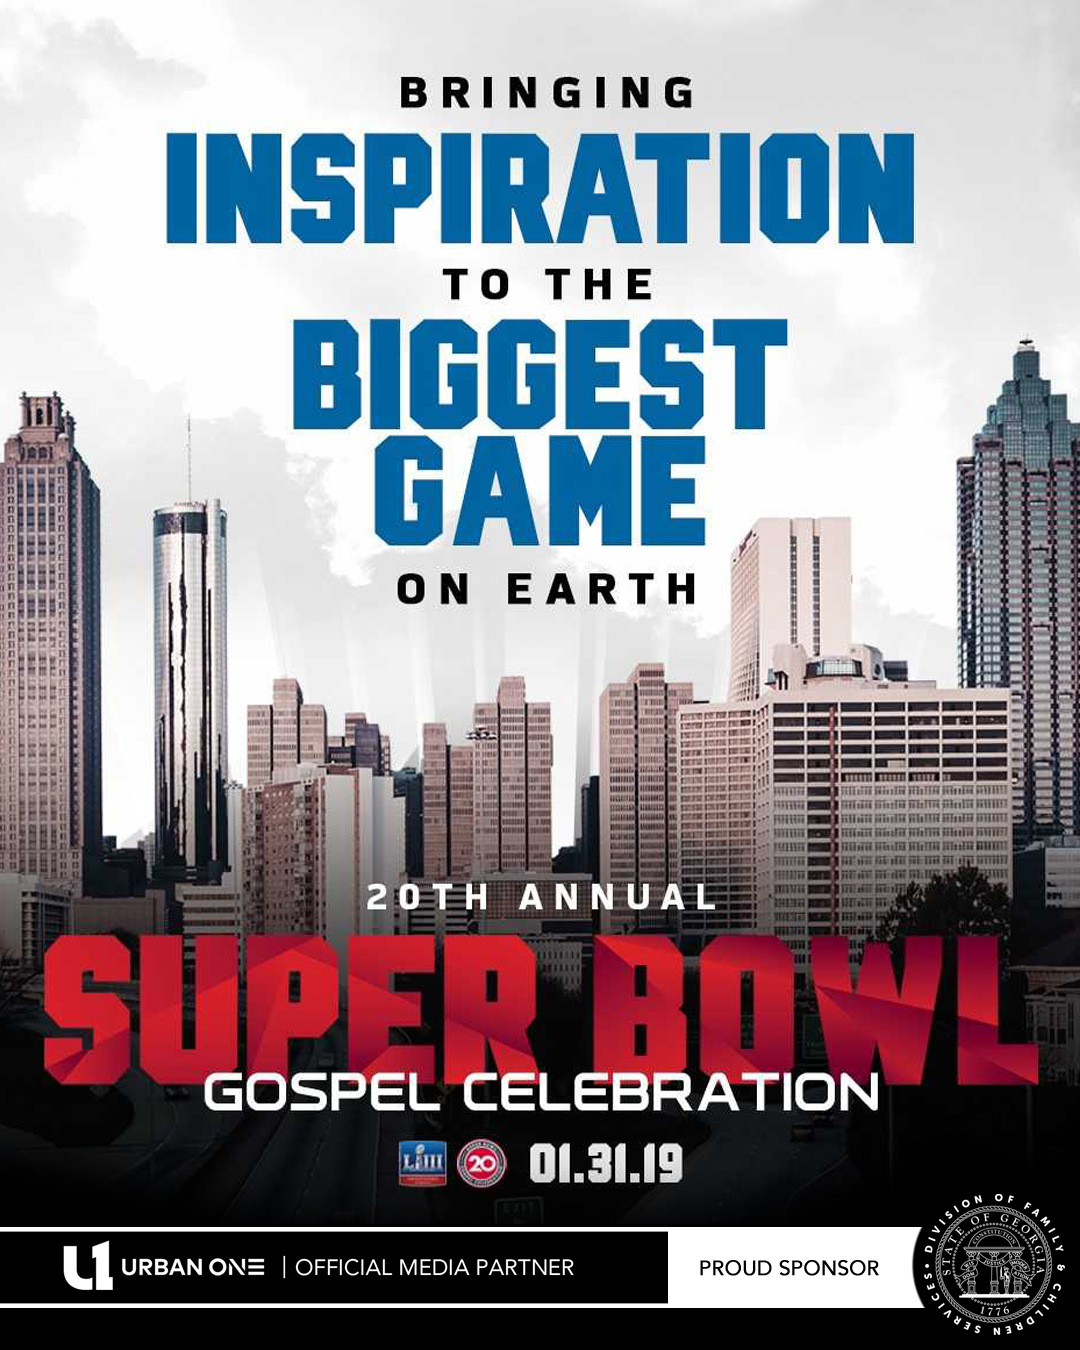 20th Annual Super Bowl Gospel Celebration